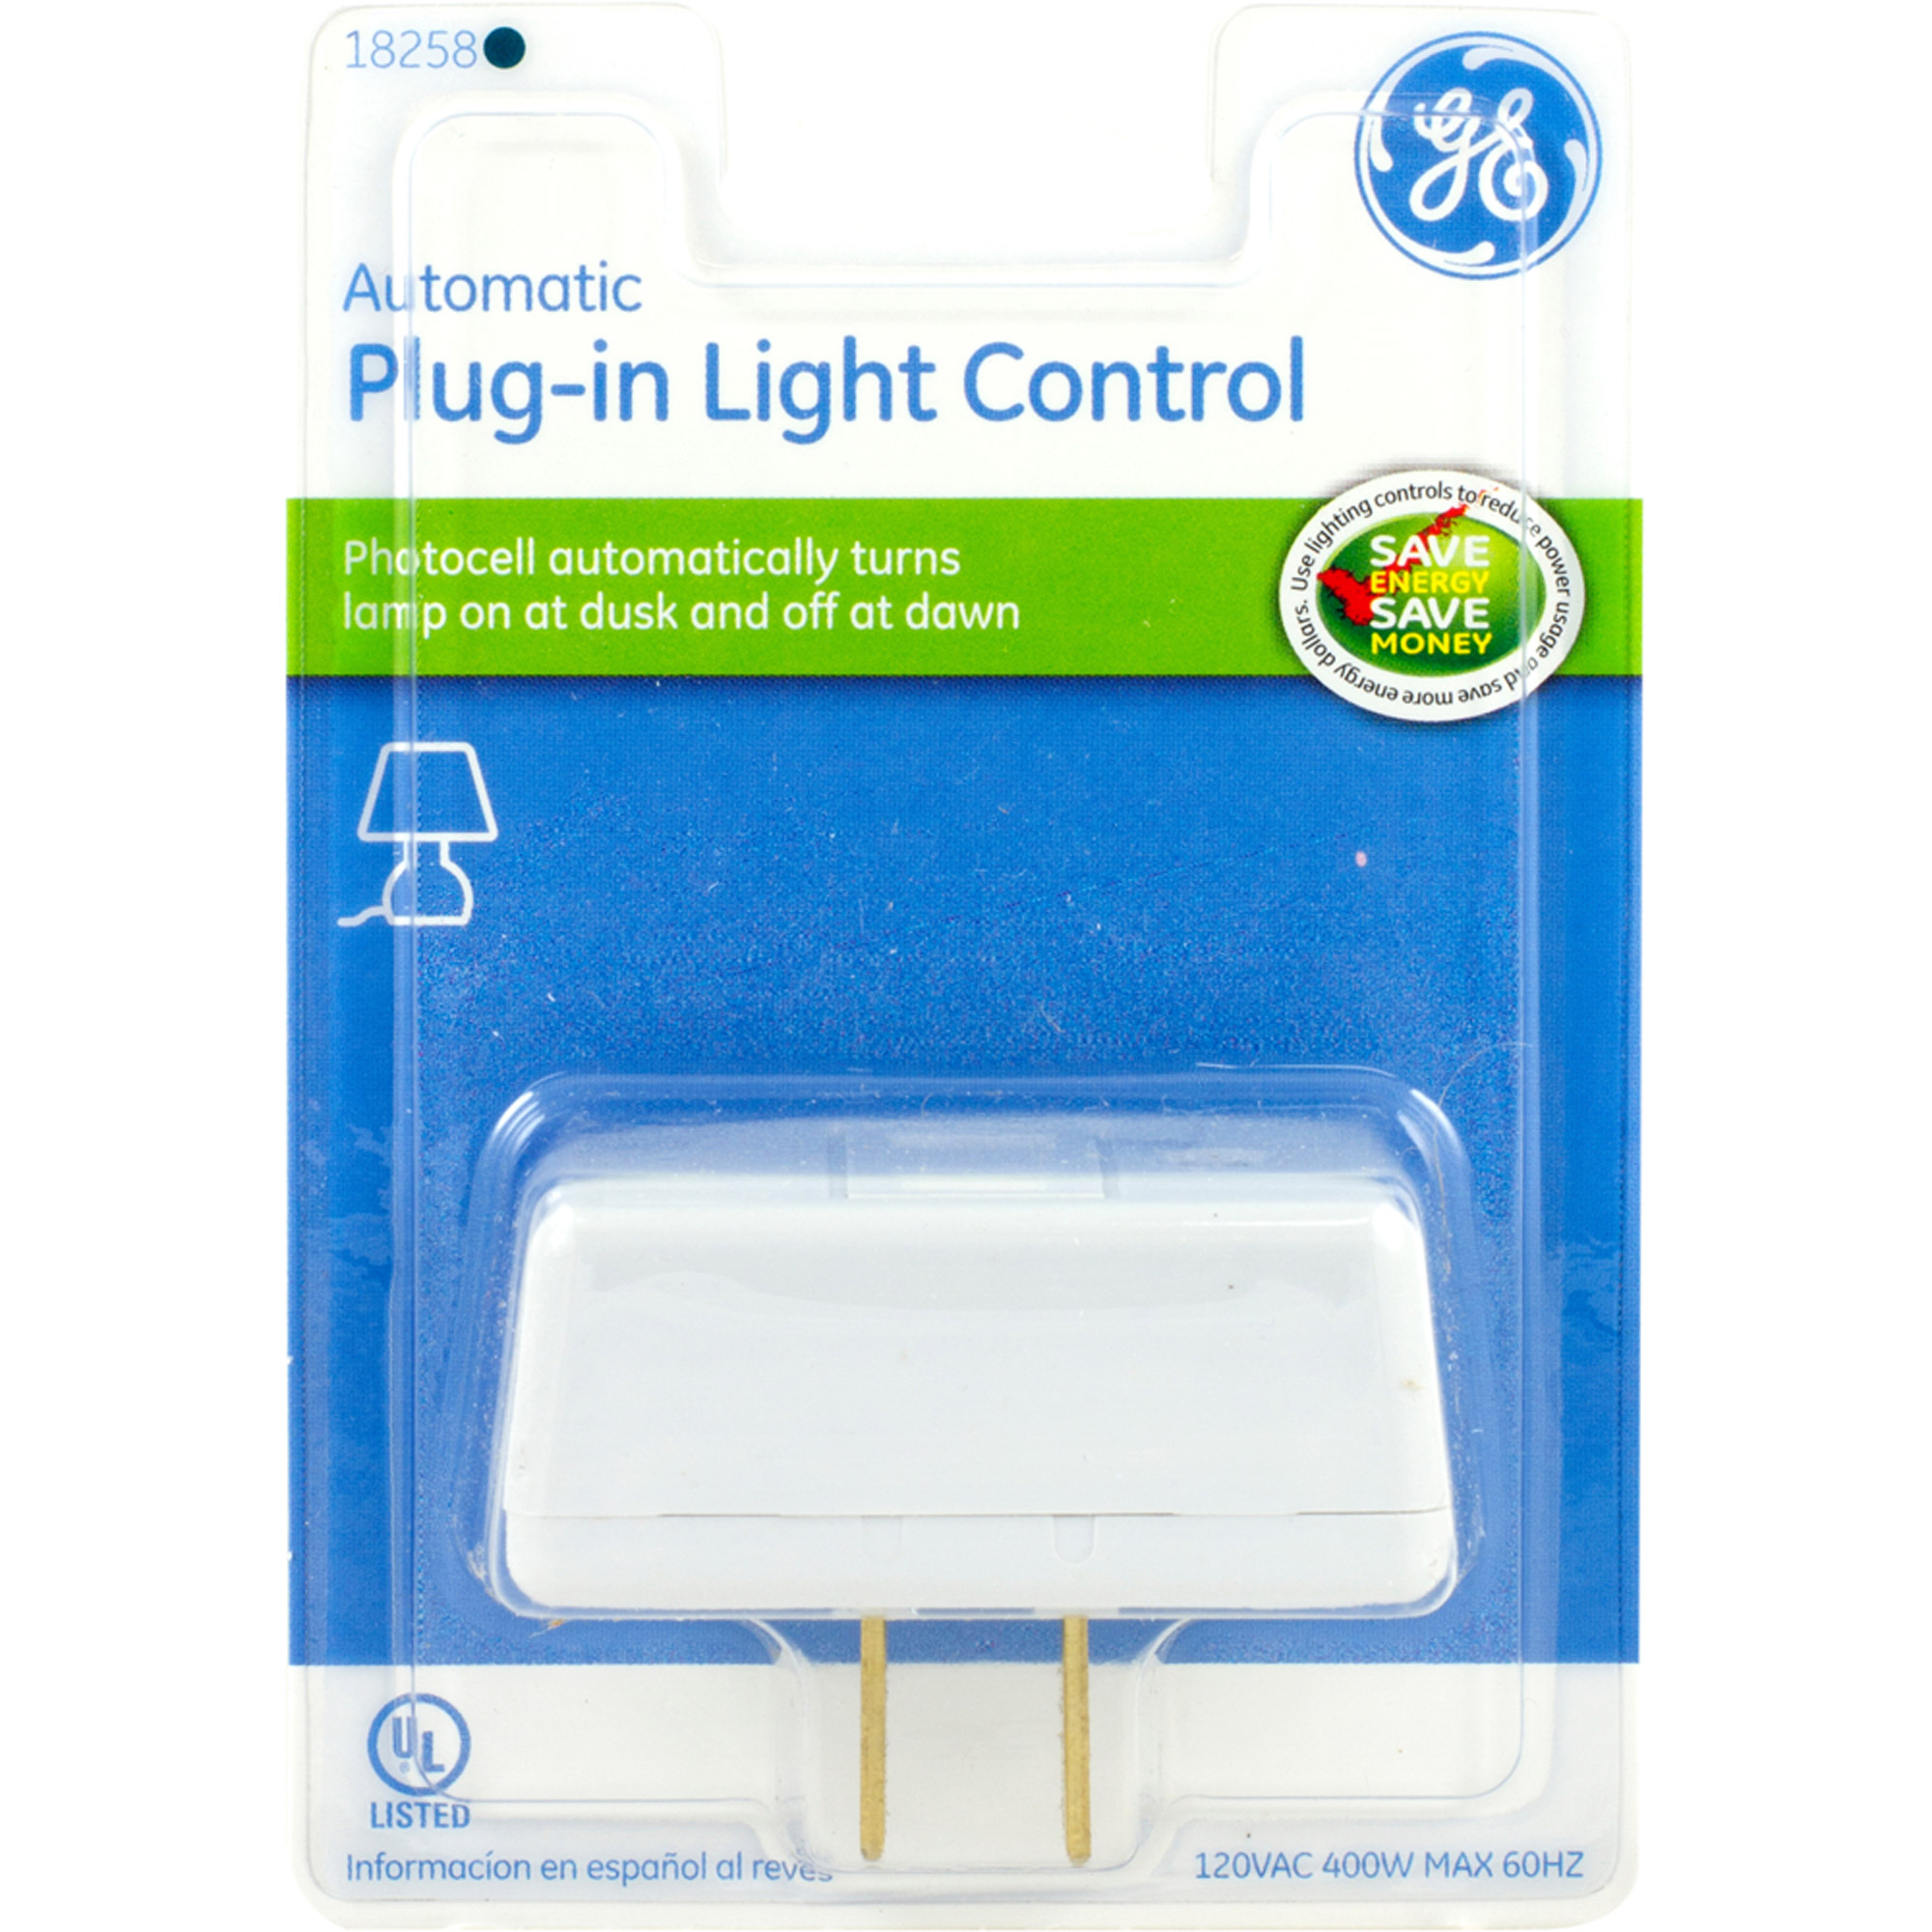 Automatic dusk to dawn light control - Automatic Plug In Light Control Photocell Turns Light On Off Walmart Com